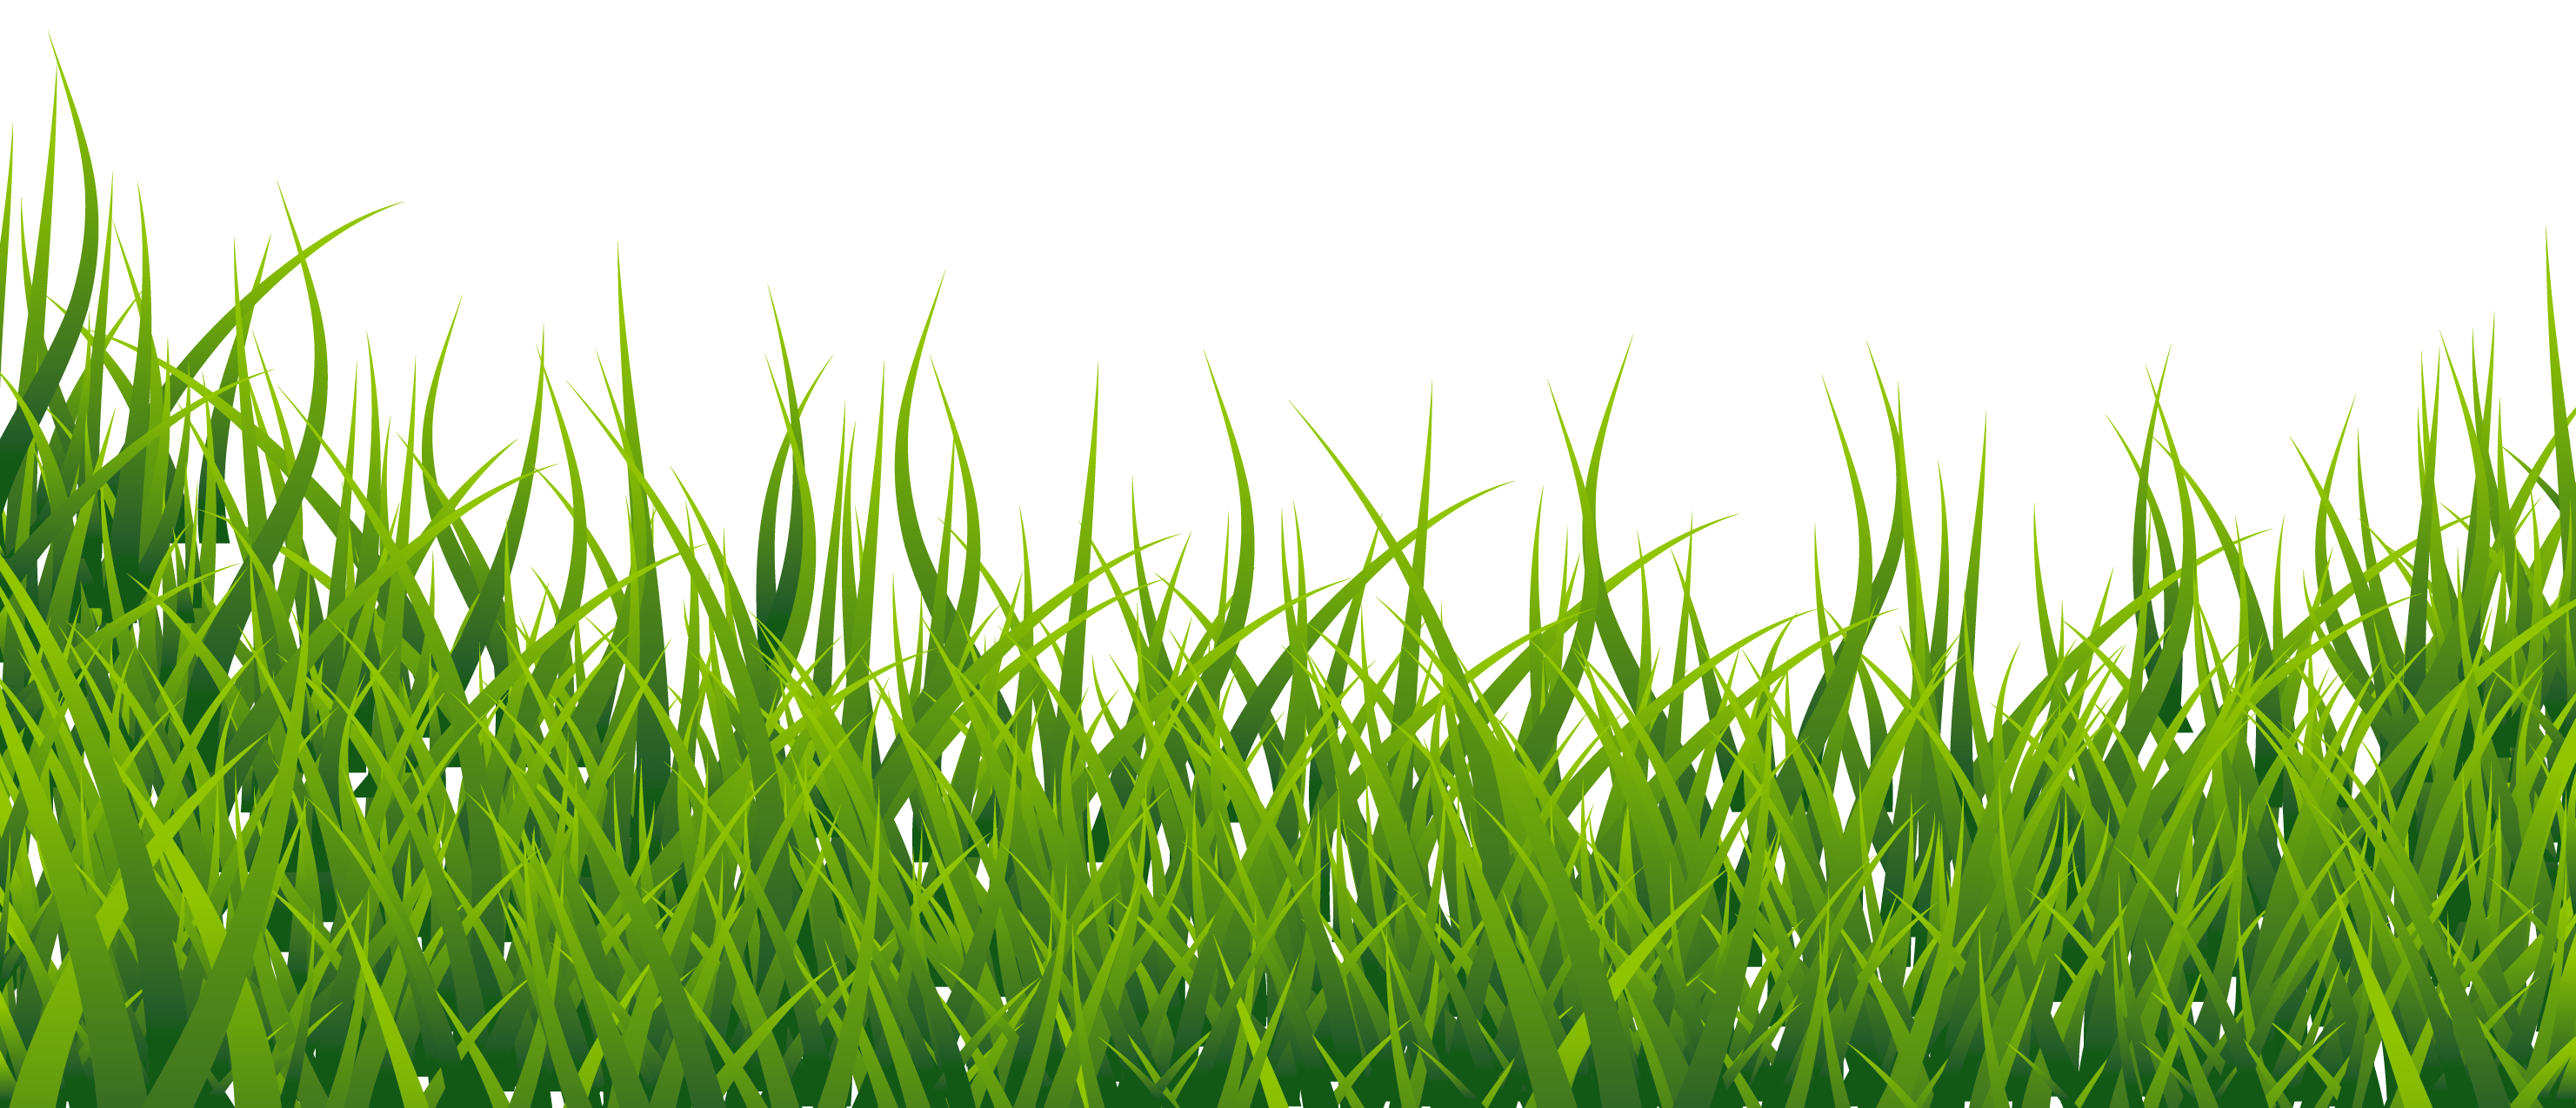 black and white google clipart black and white grass clipart grass vector  [ 2962 x 1274 Pixel ]